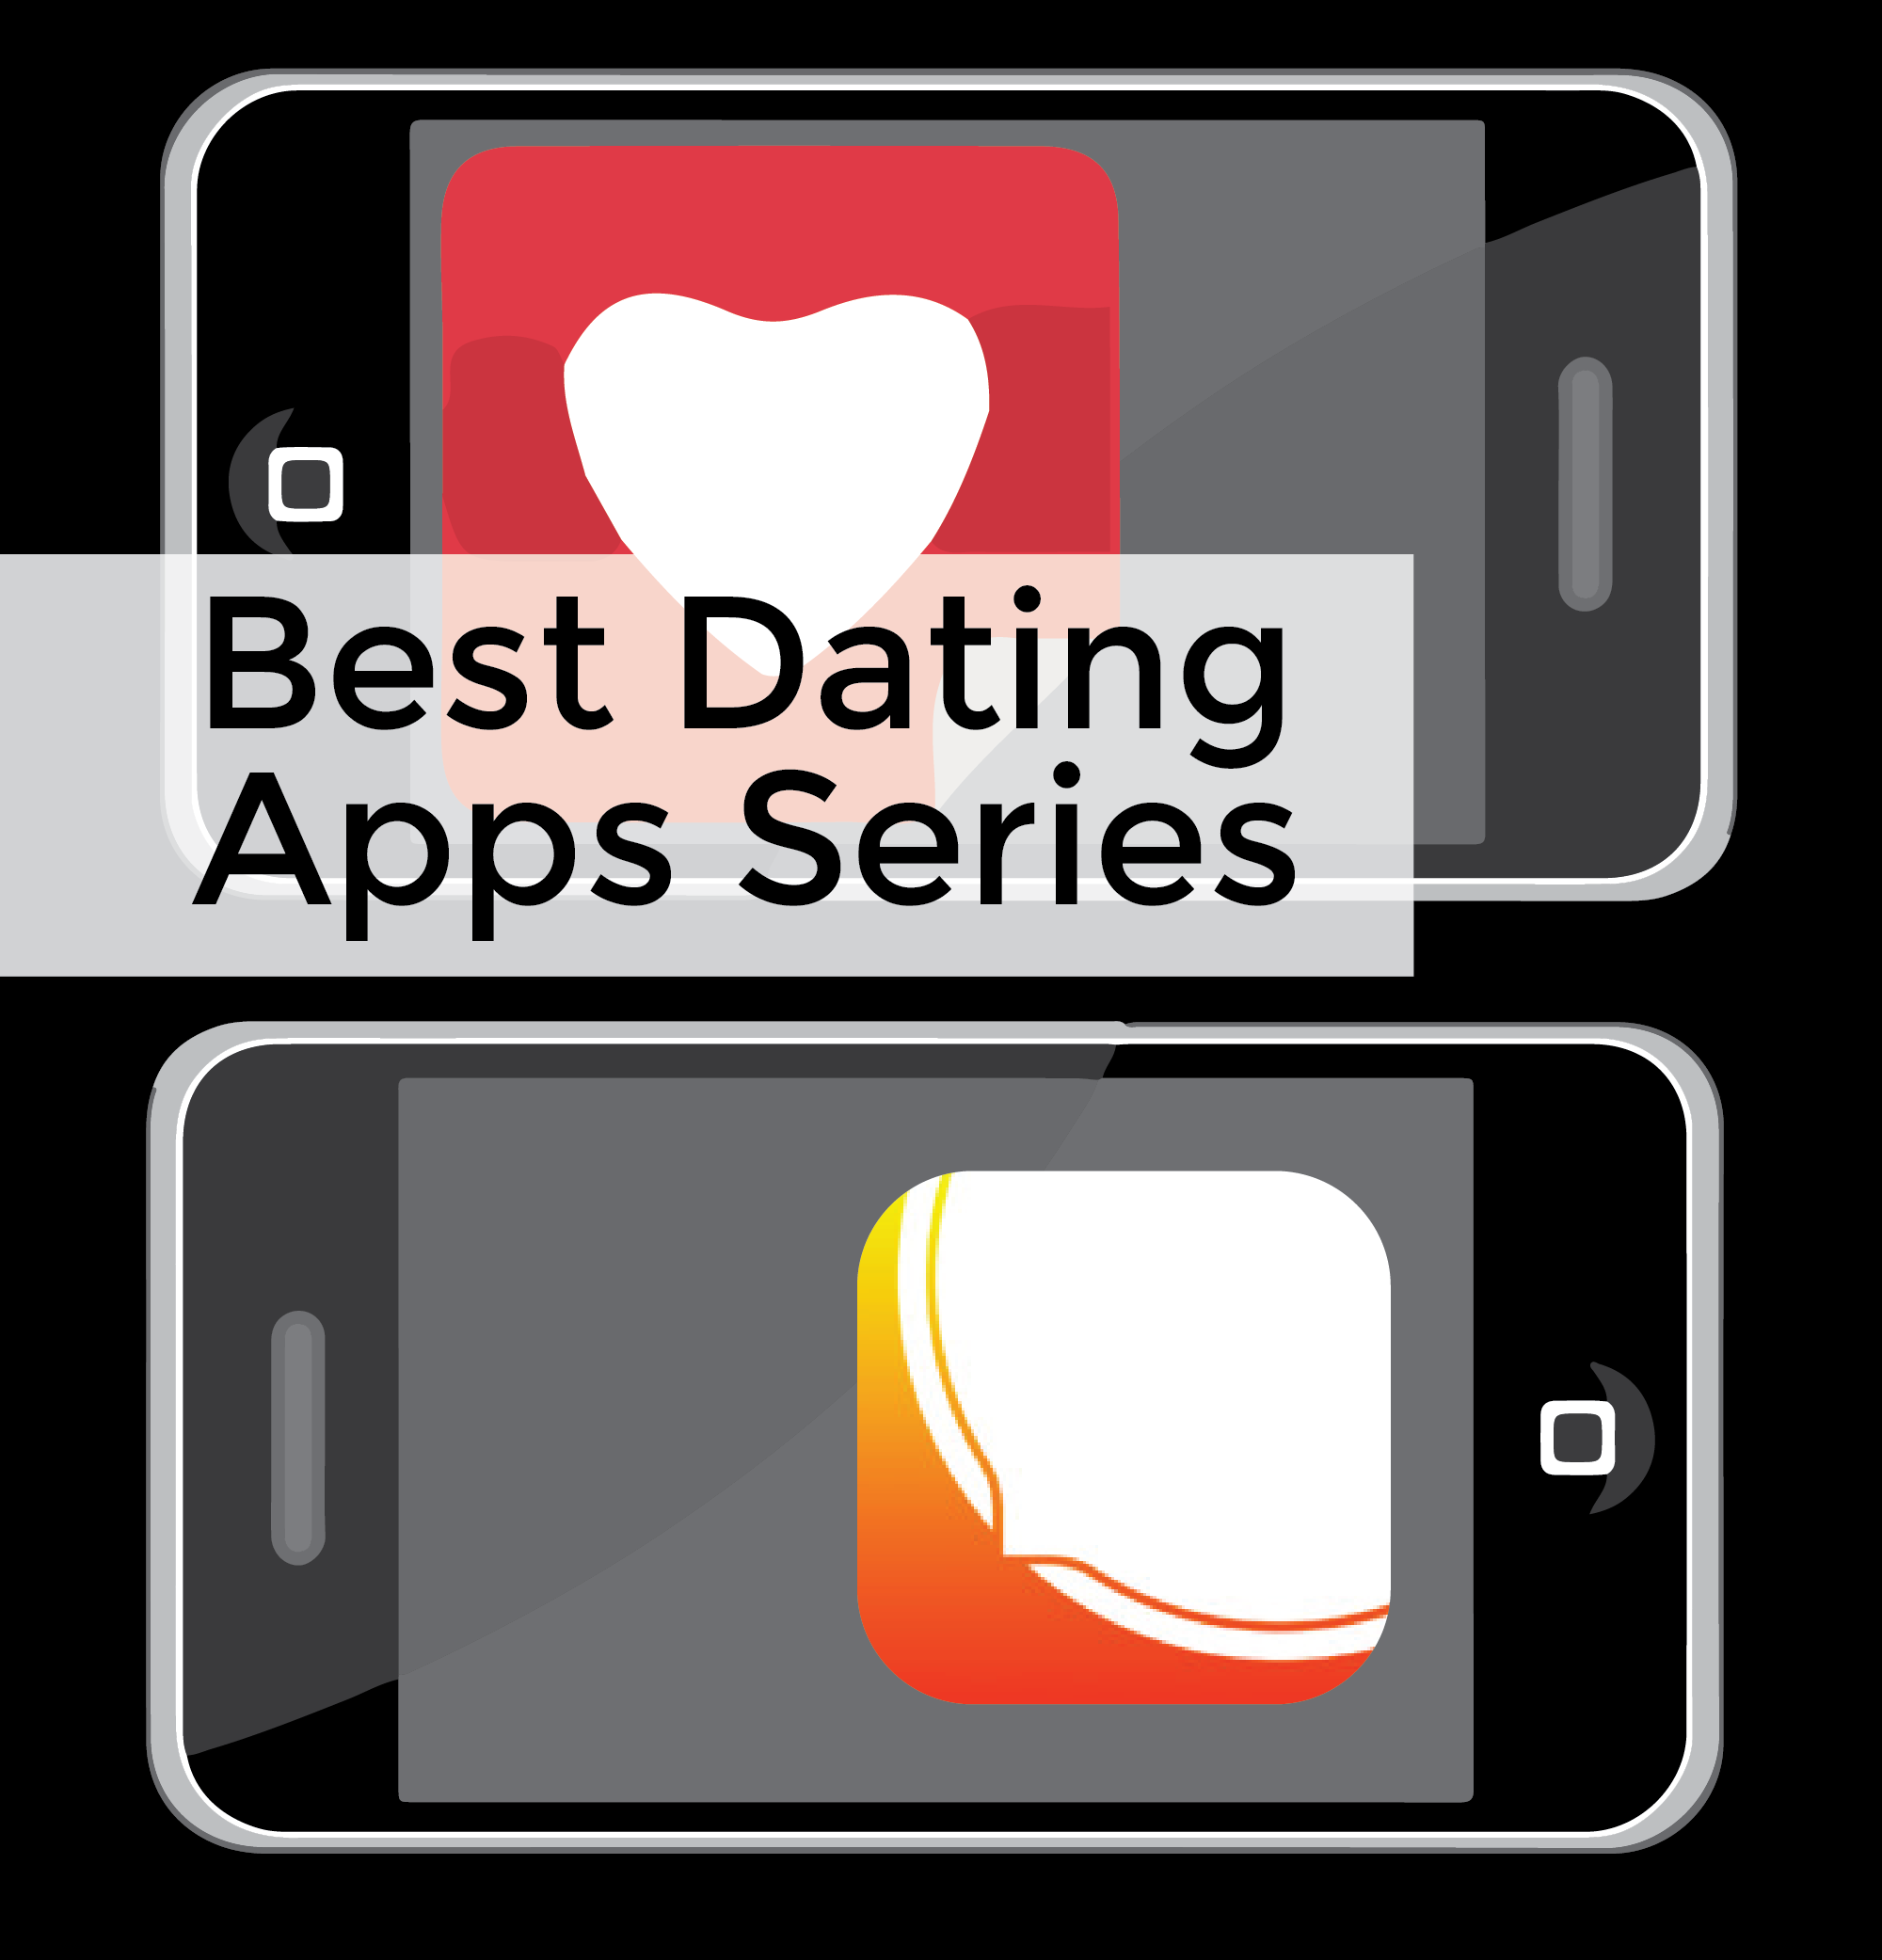 Best dating apps vice